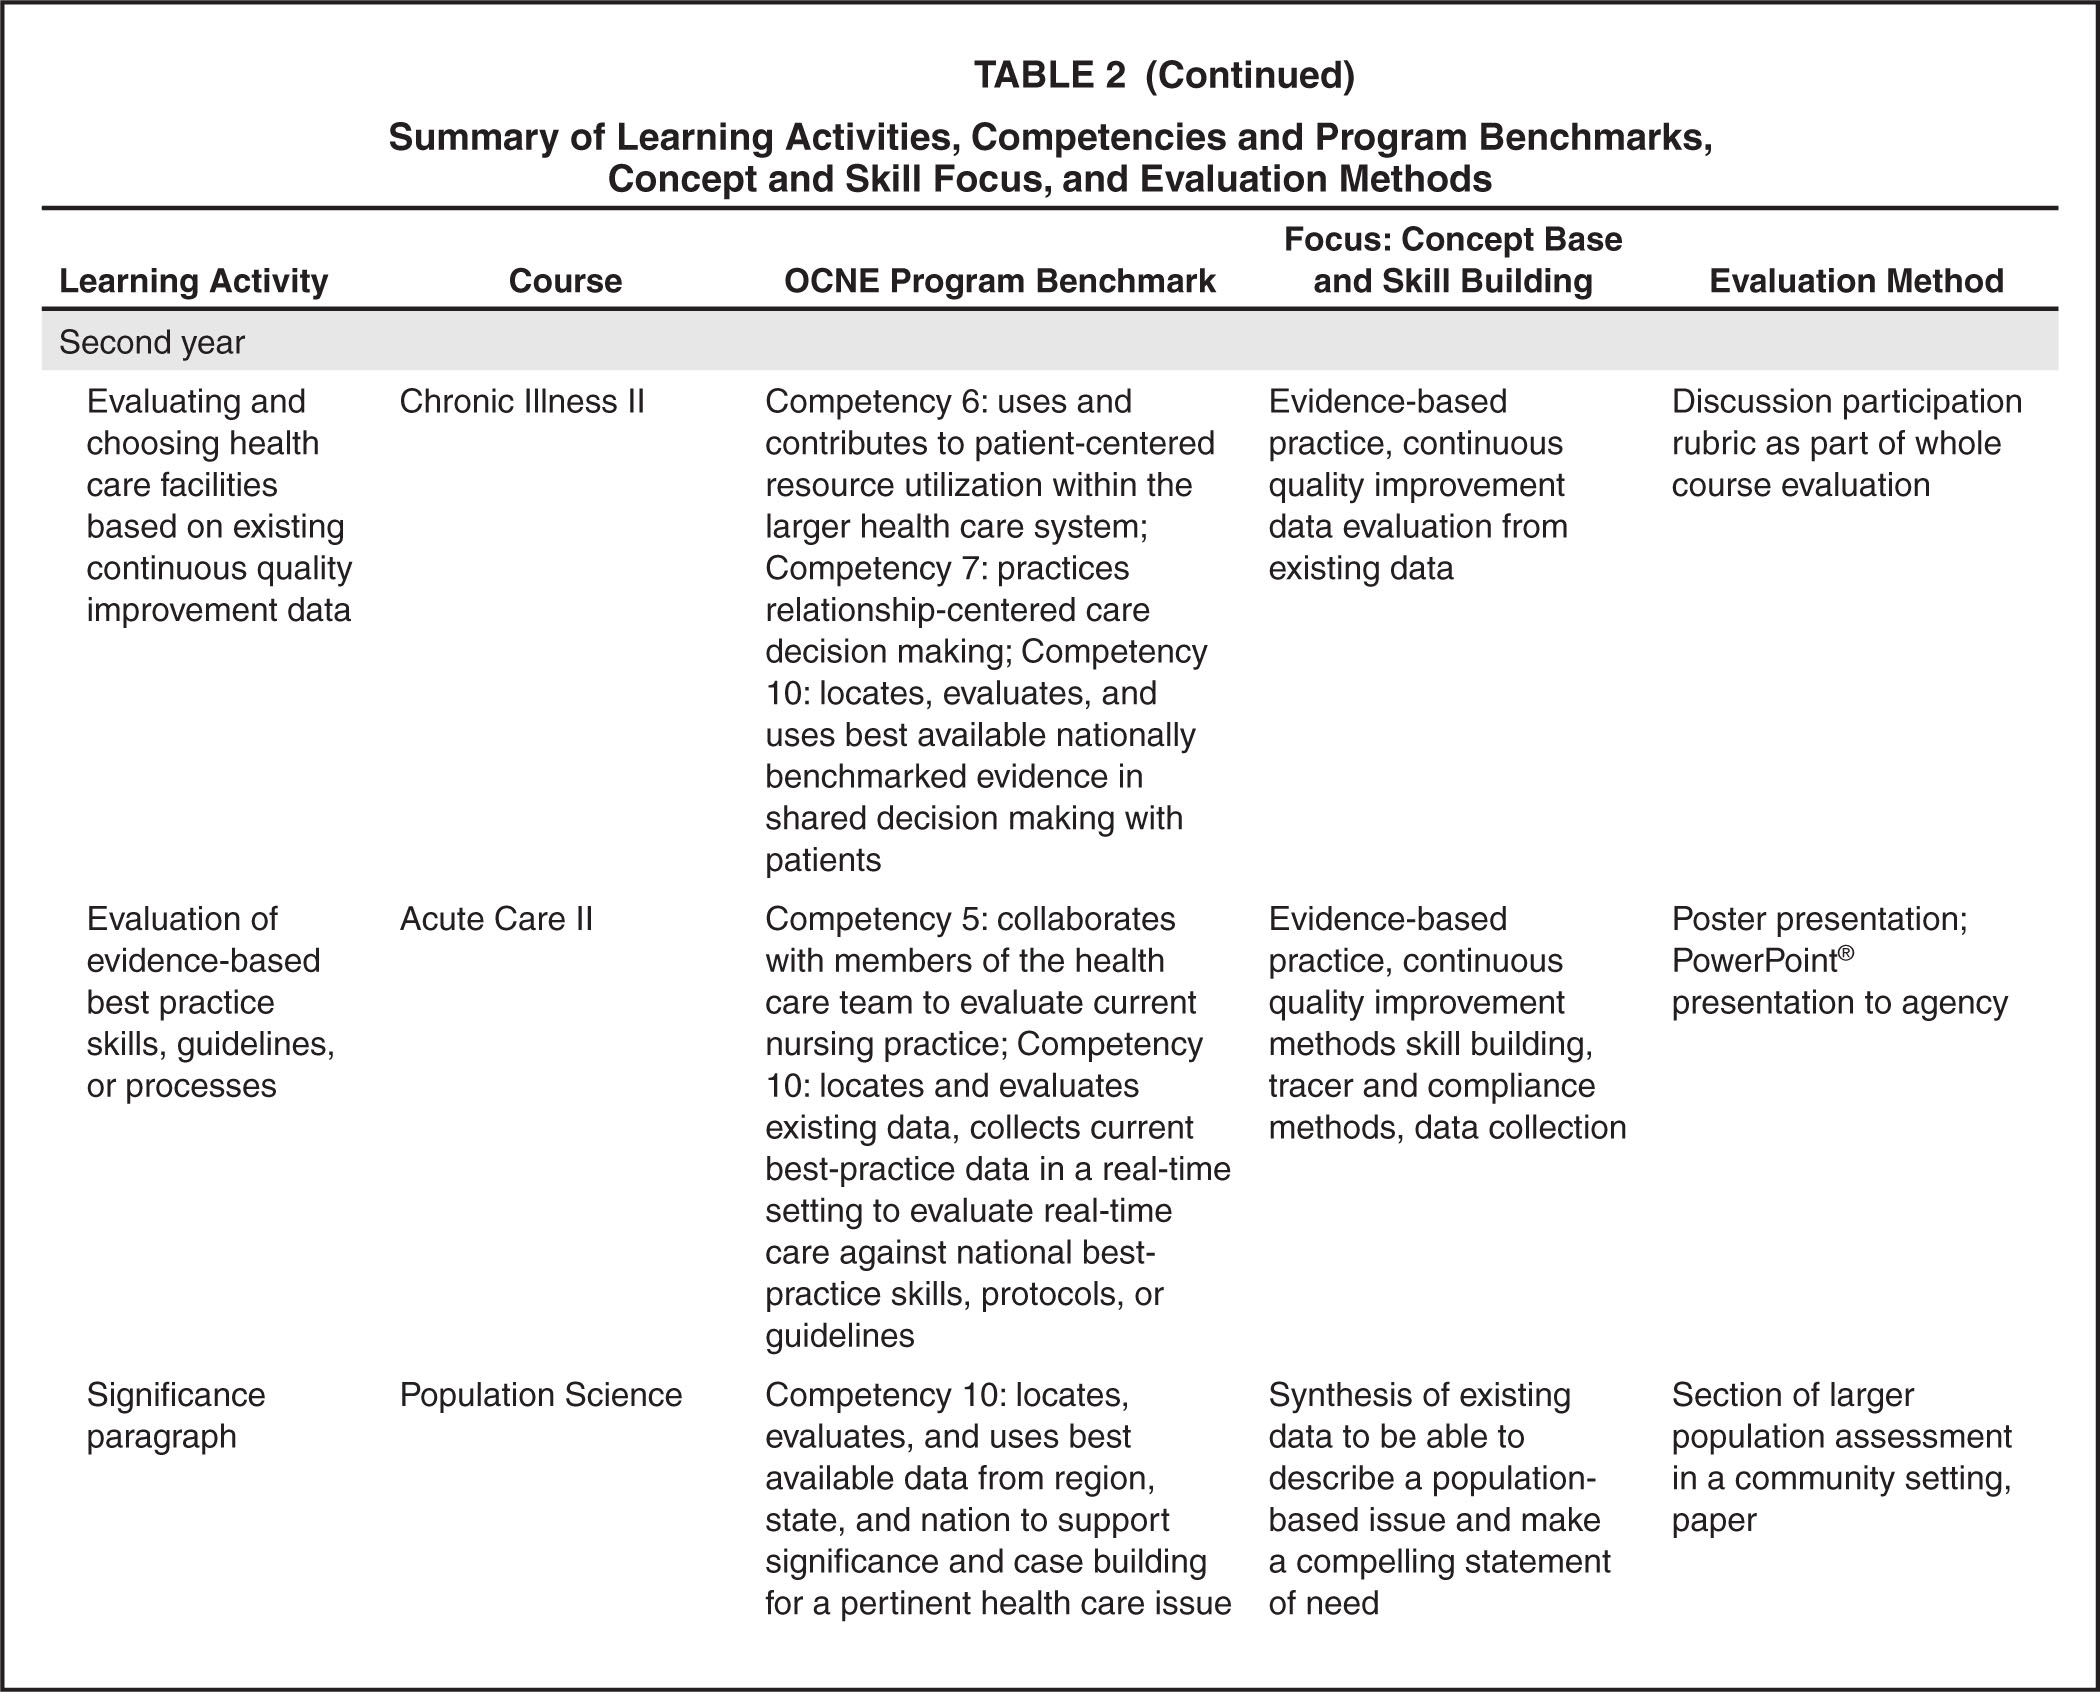 Summary of Learning Activities, Competencies and Program Benchmarks, Concept and Skill Focus, and Evaluation Methods